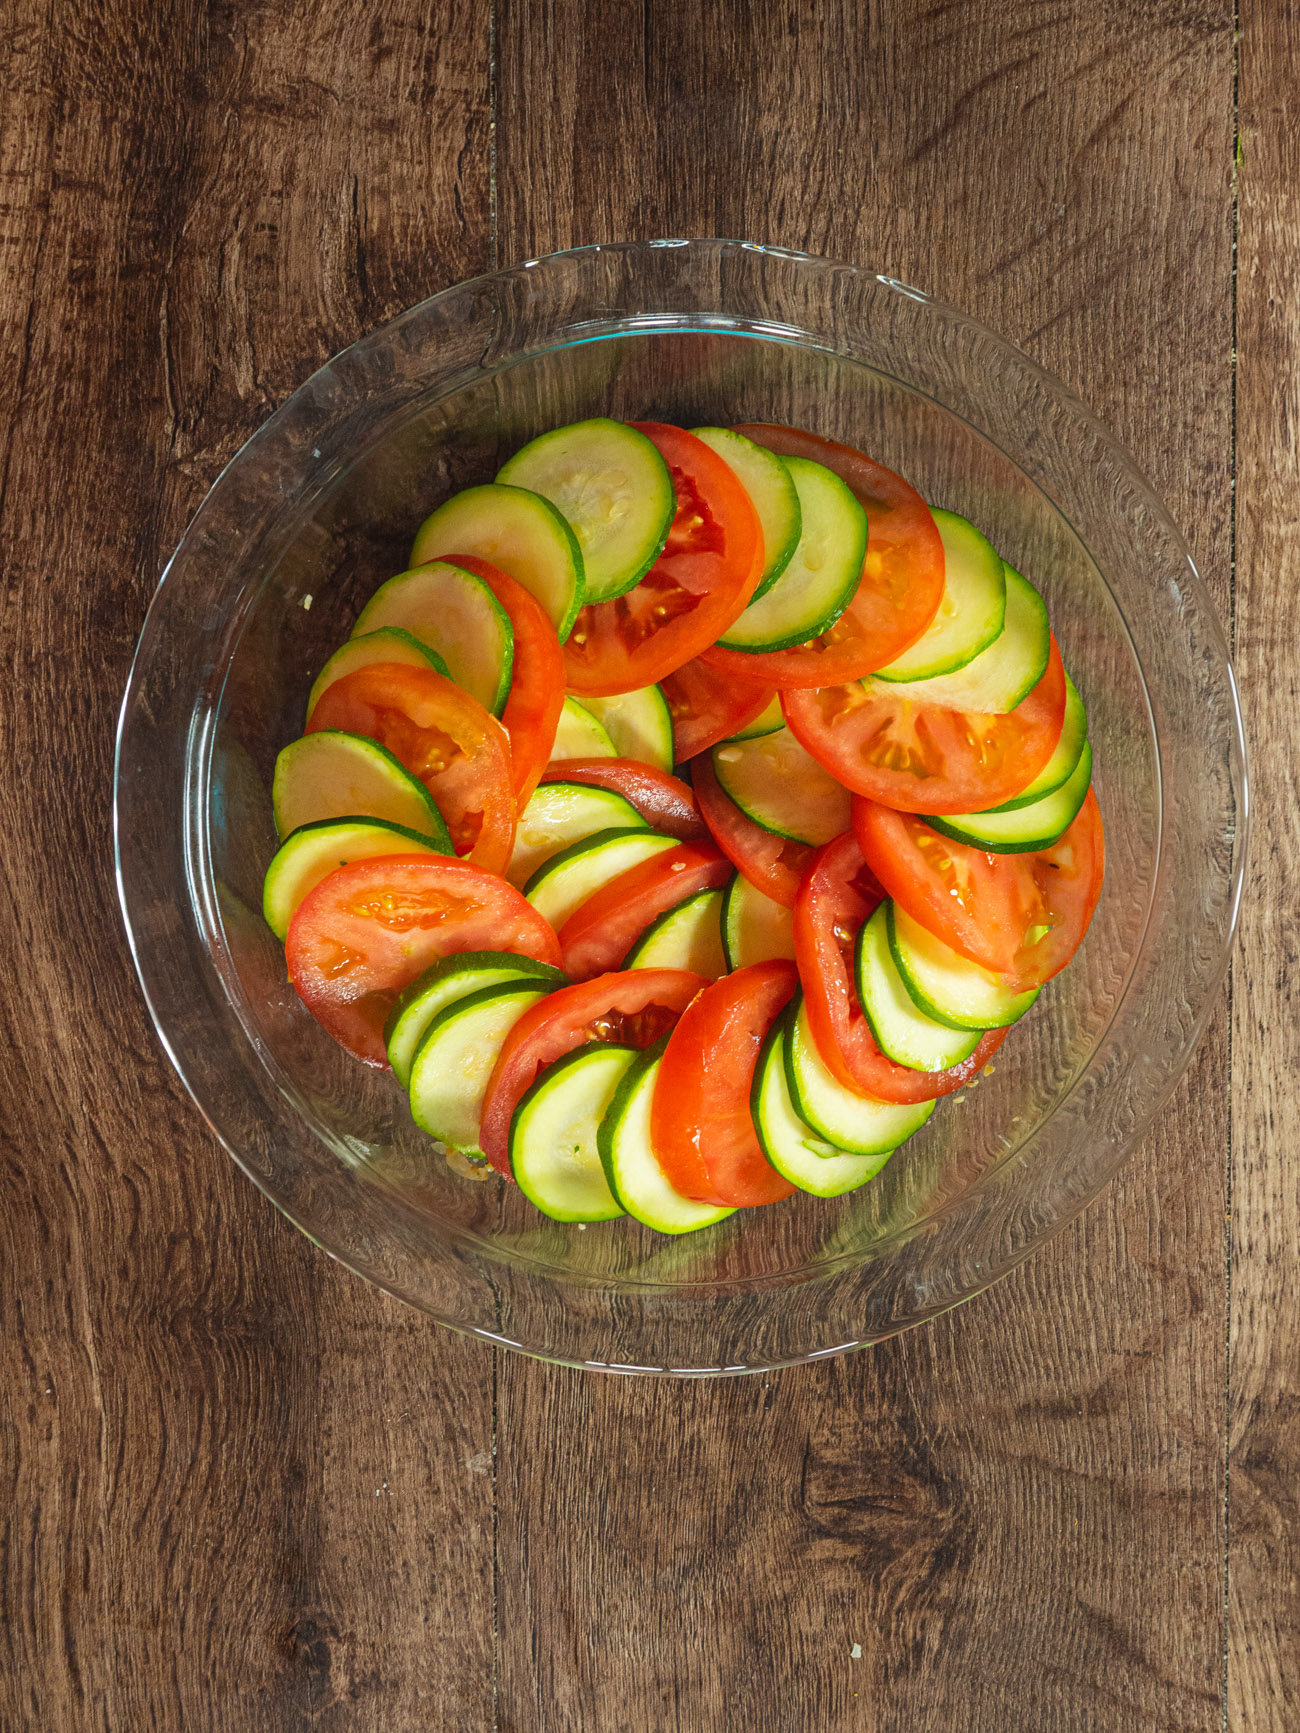 Layer tomatoes and zucchini slices in a circle, alternating a layer of 2 zucchini slices and 1 tomato slice until the dish is filled.